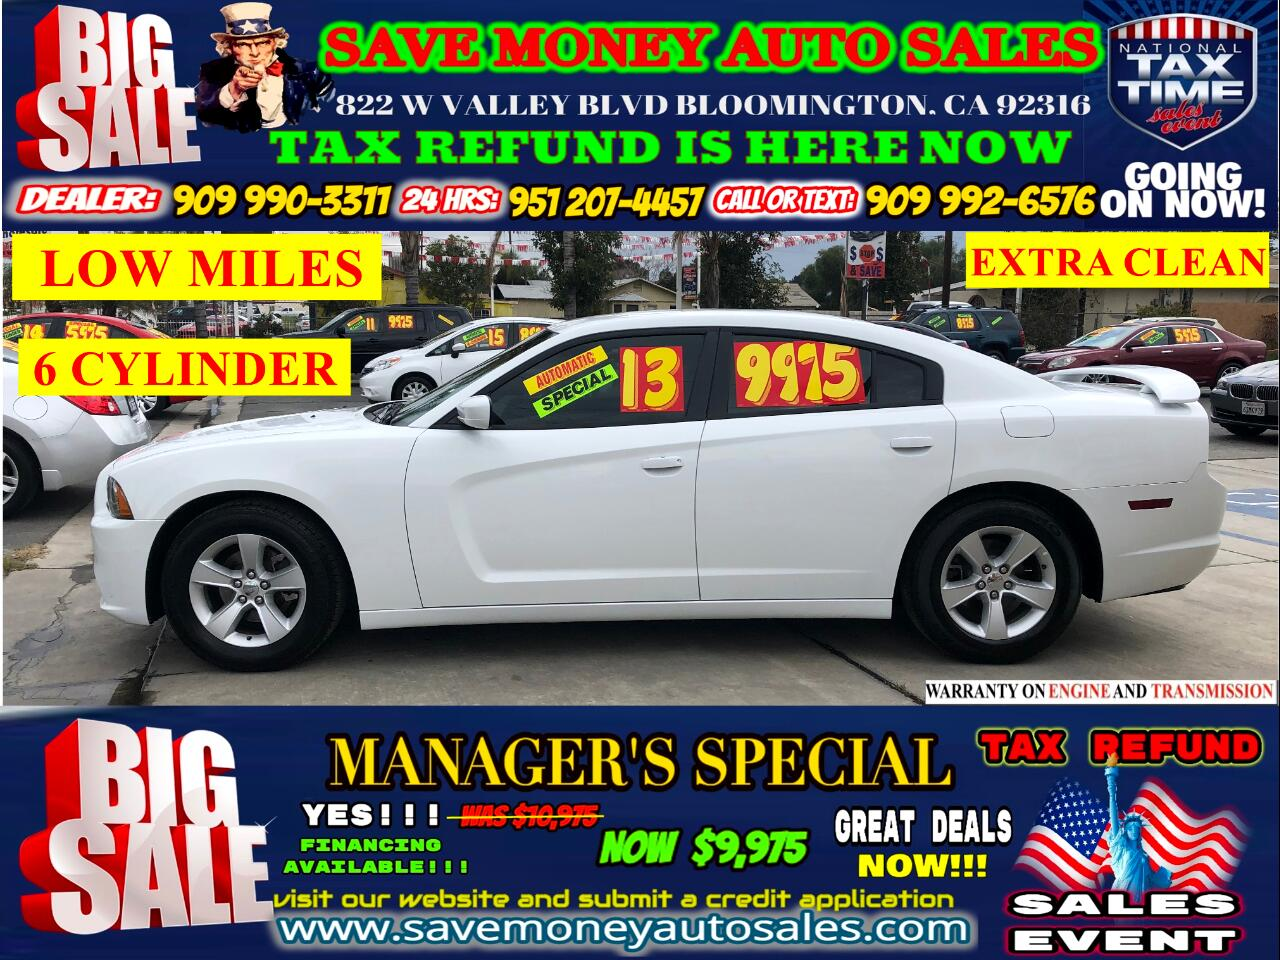 2013 Dodge Charger 2013 DODGE CHARGER>LOW MILES>V6>AUTOMATIC